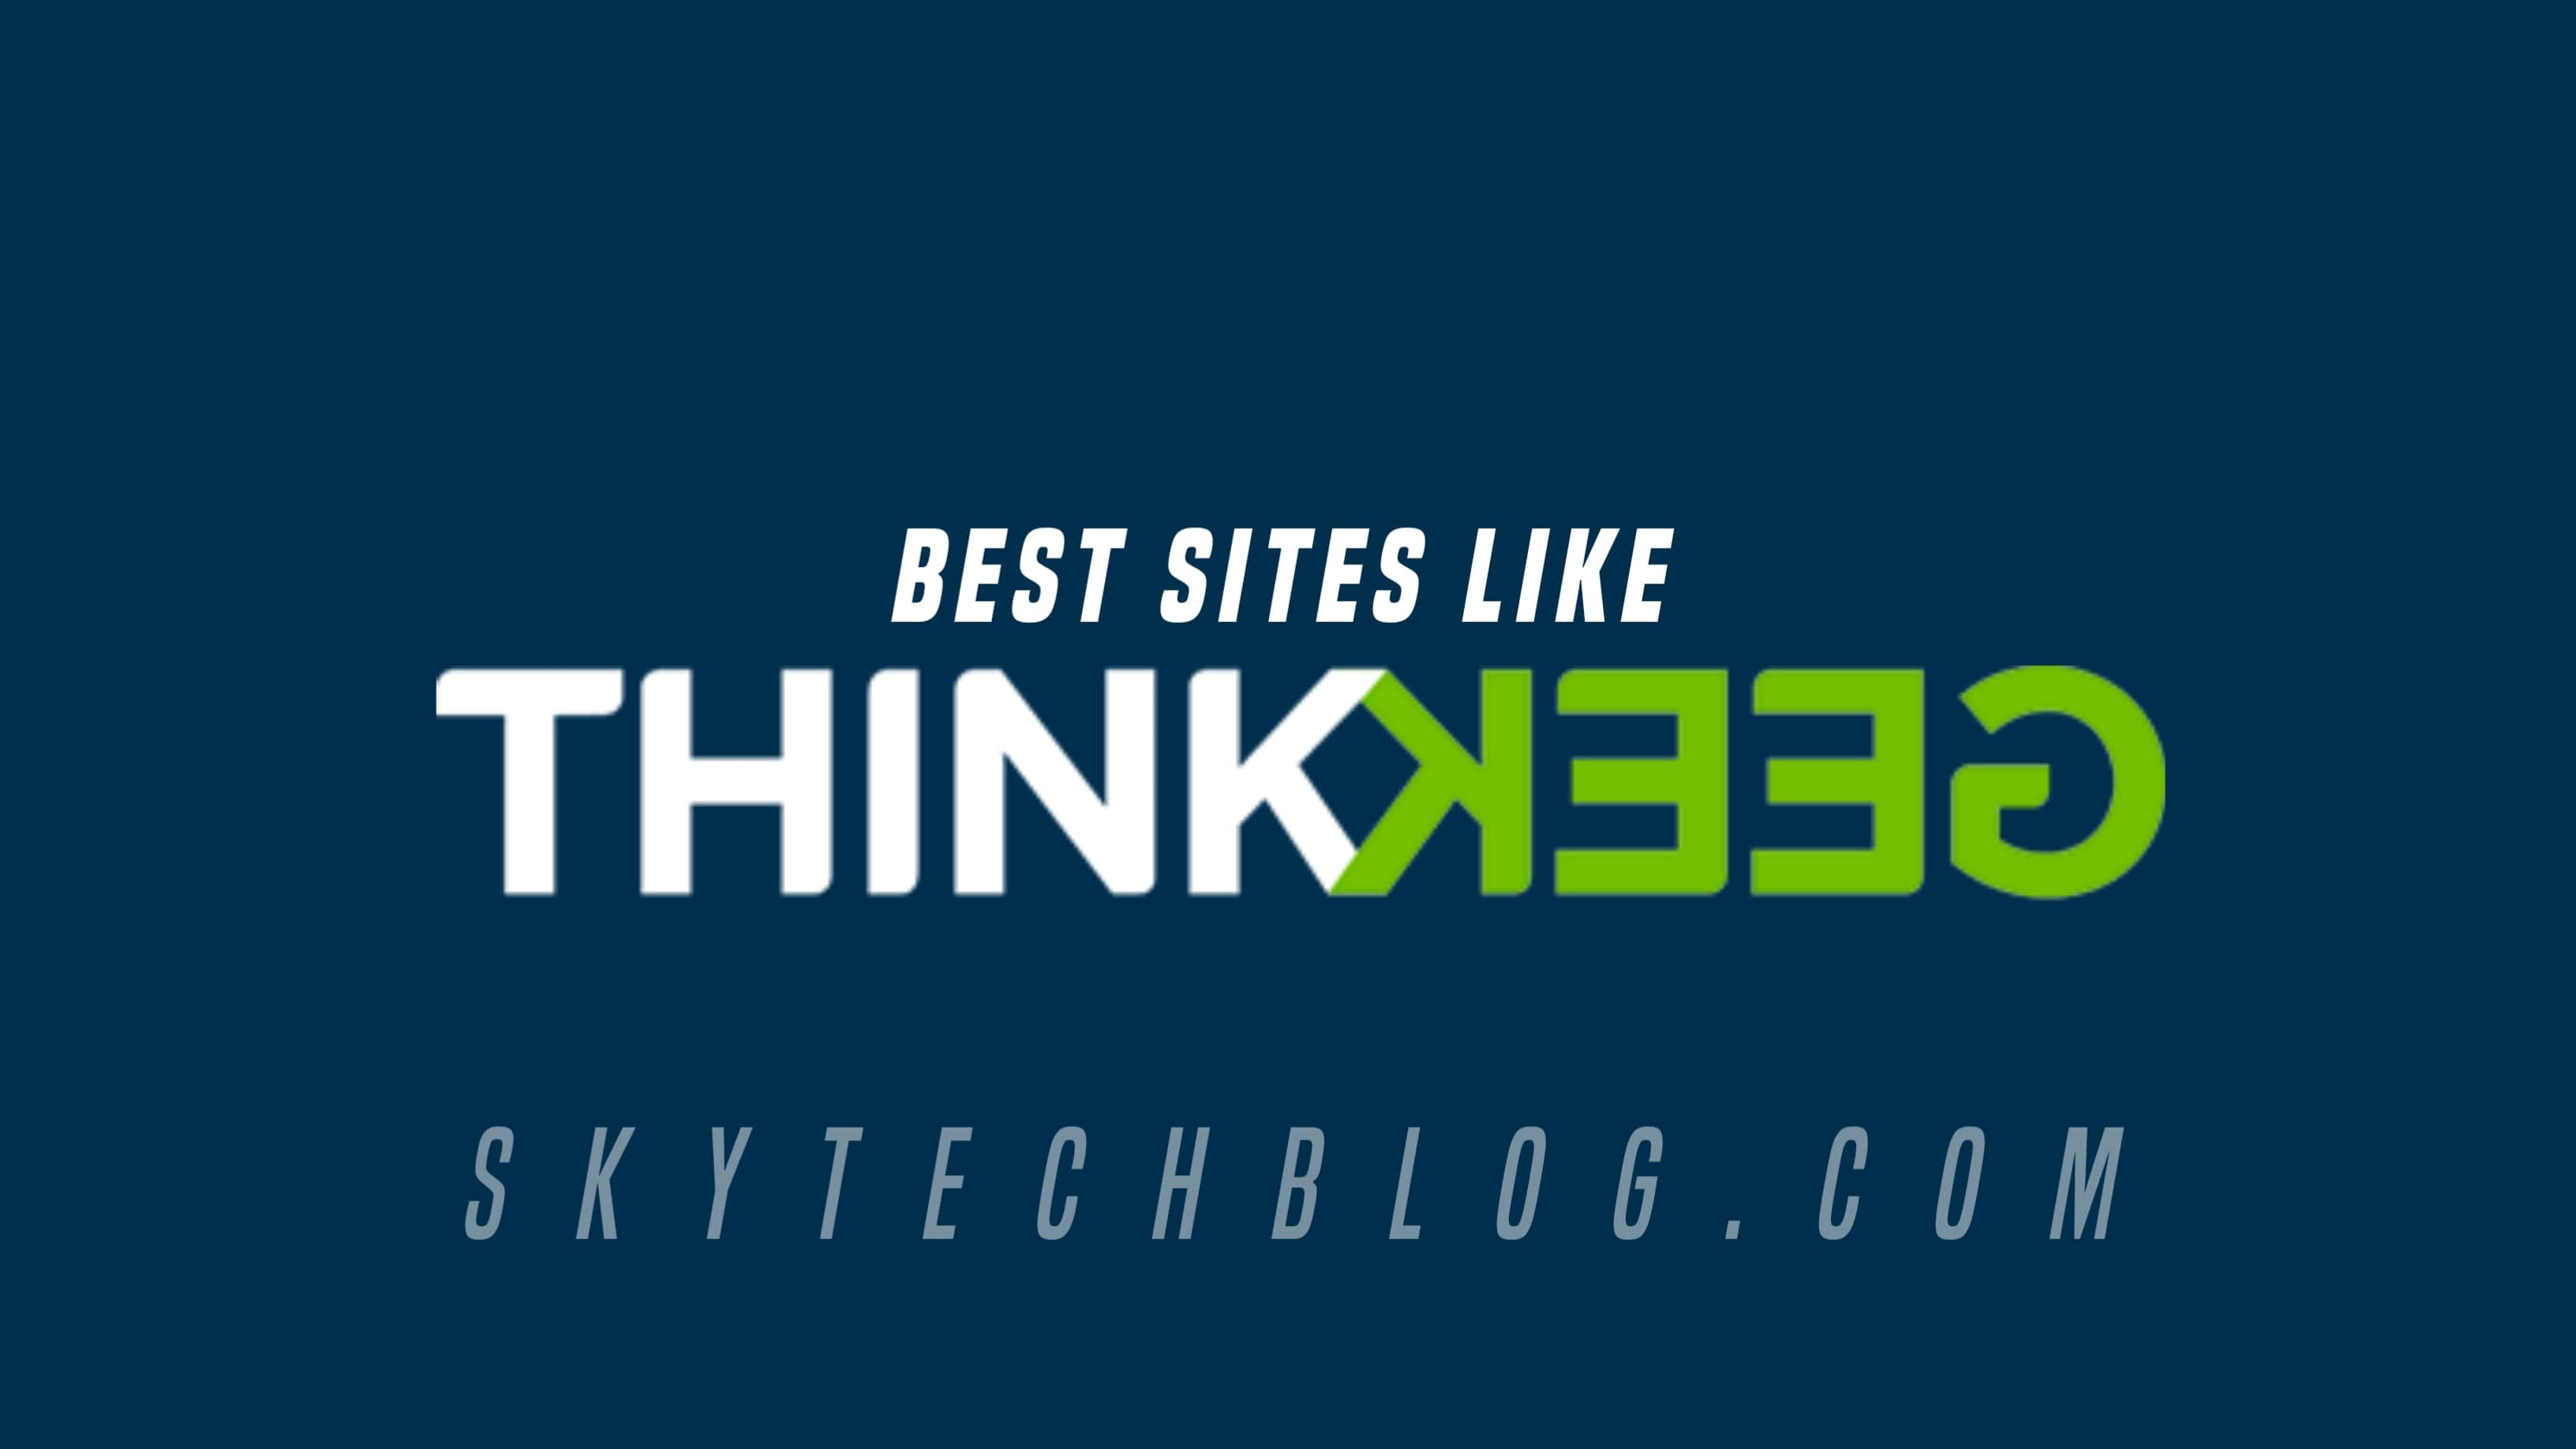 Site like ThinkGeek